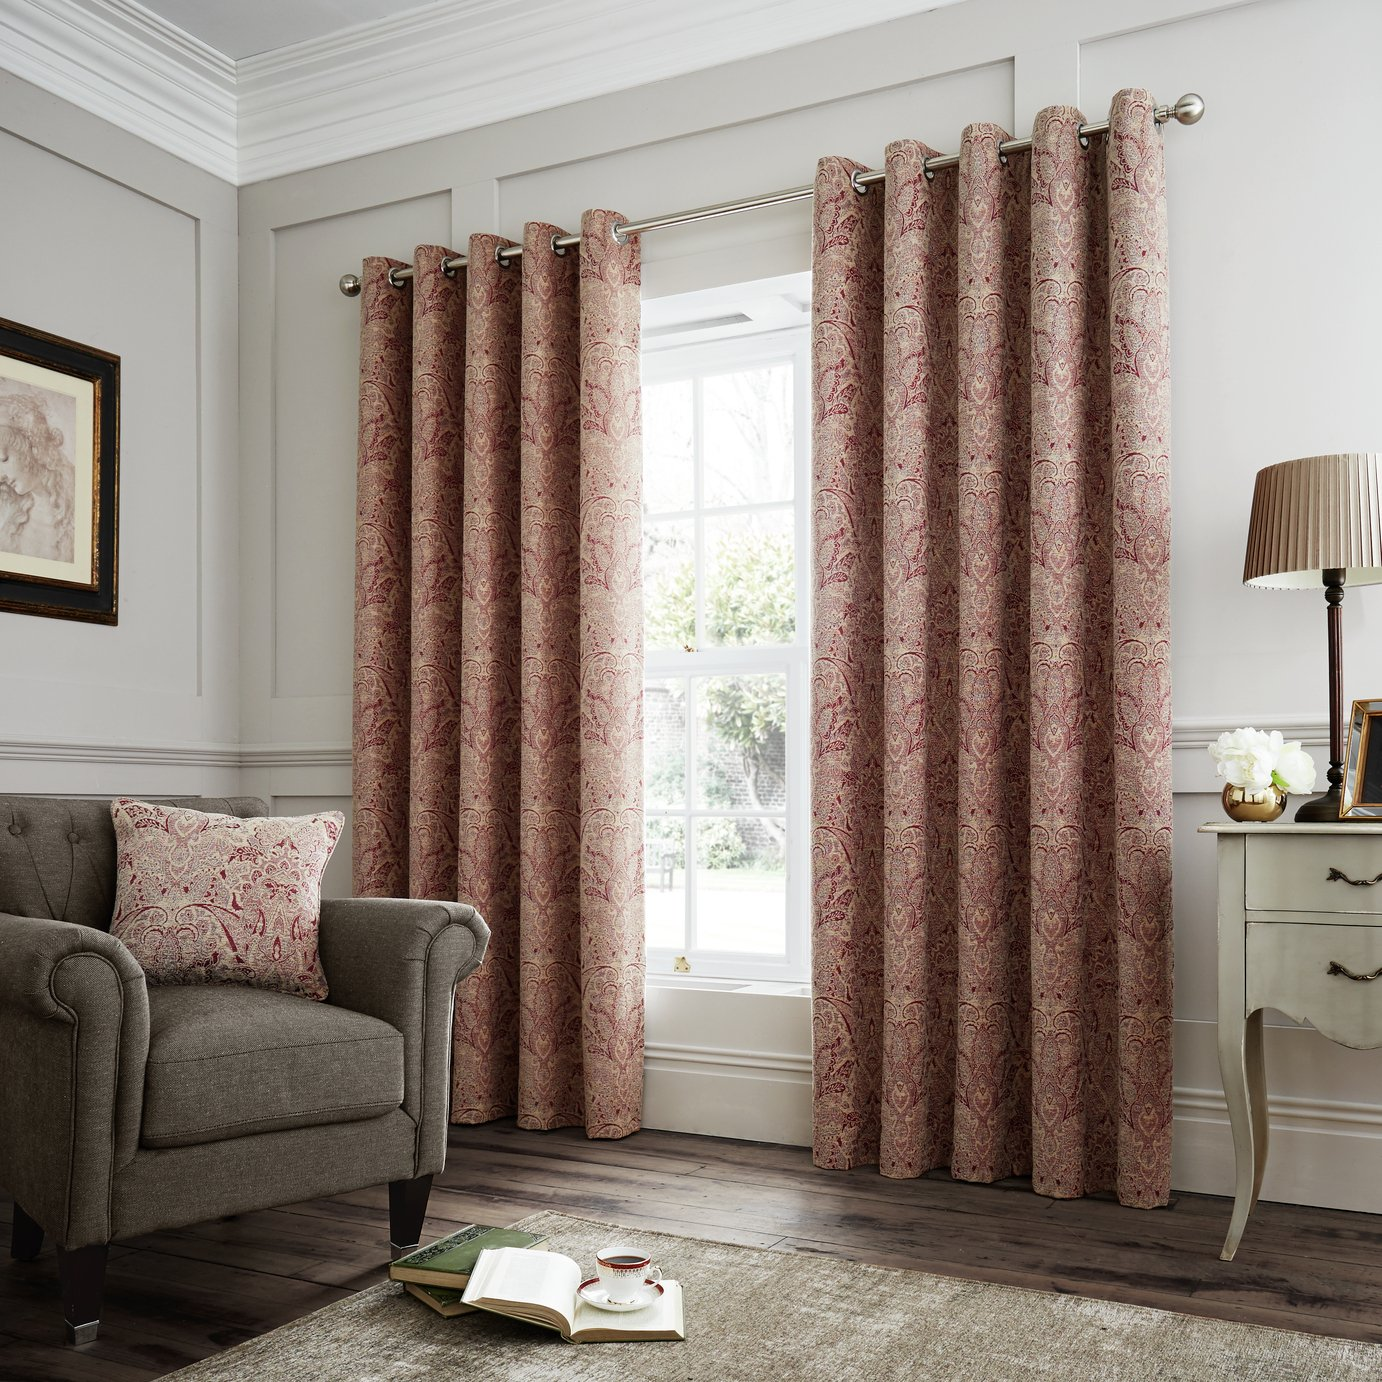 Curtina Whitcliffe Lined Eyelet Curtains - 168x183cm - Multi